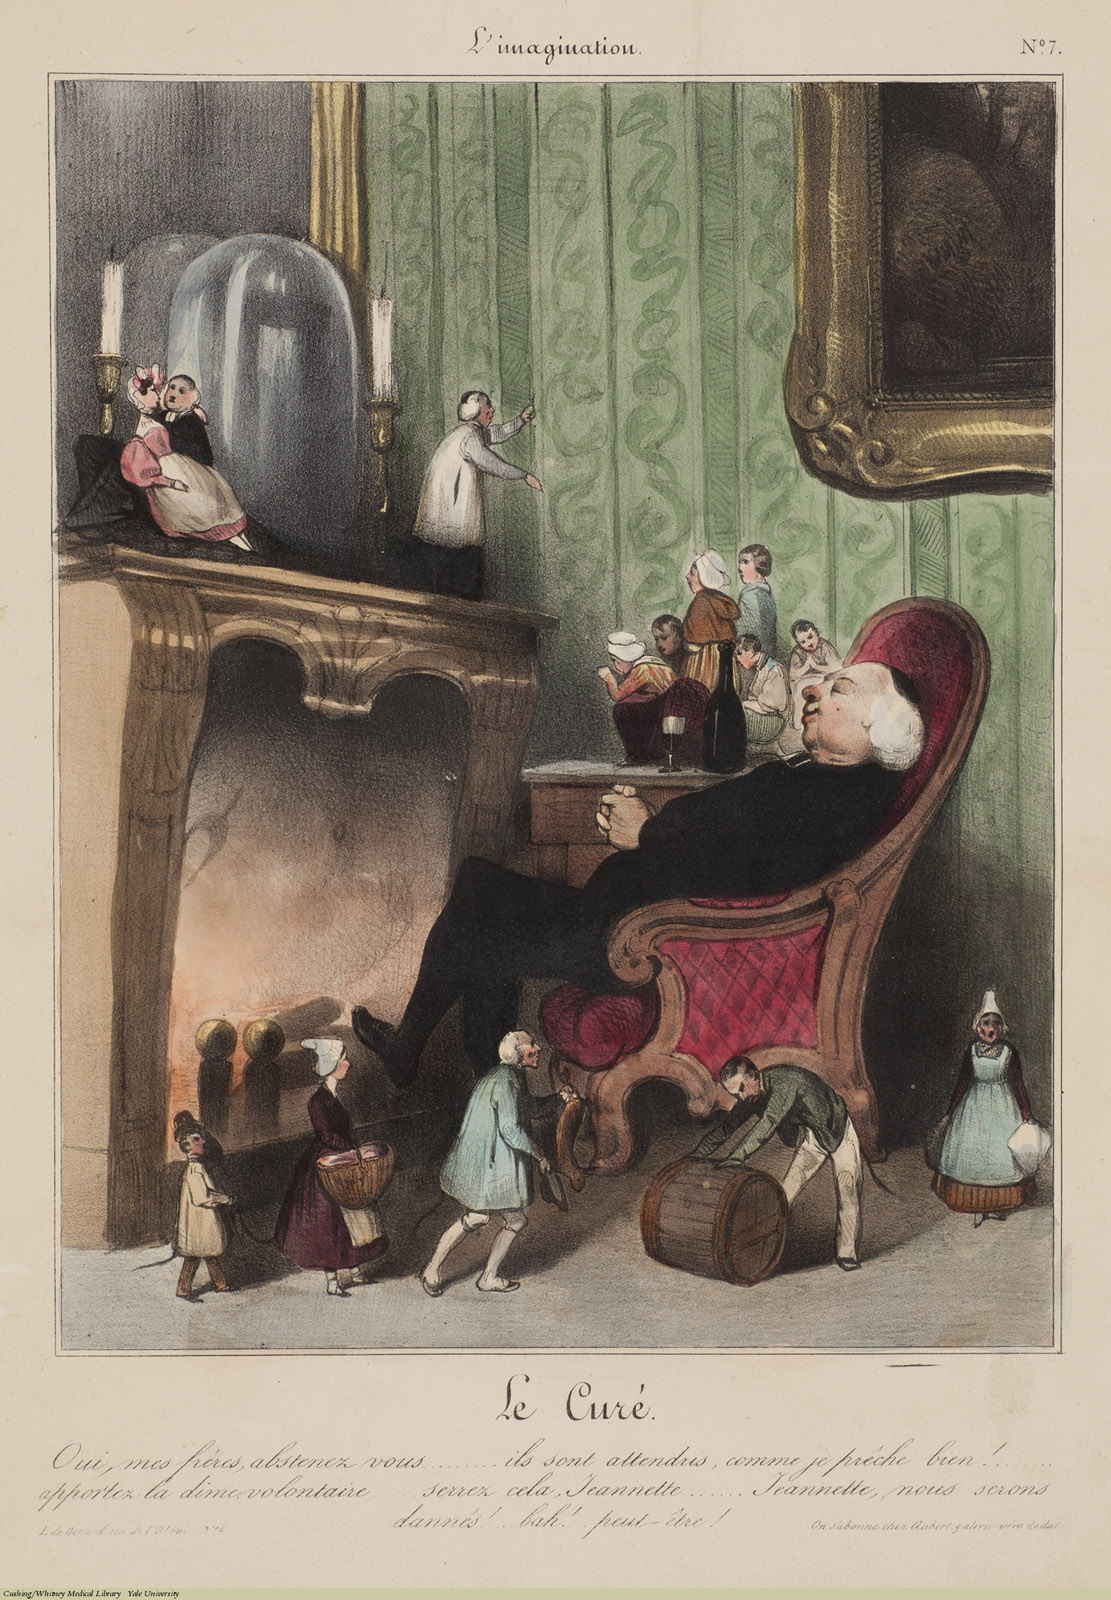 Le Cure. Oui, mes freres... Charles Ramelet / Honore Daumier, Lithograph coloured. Subject: Alcohol, Sleep.